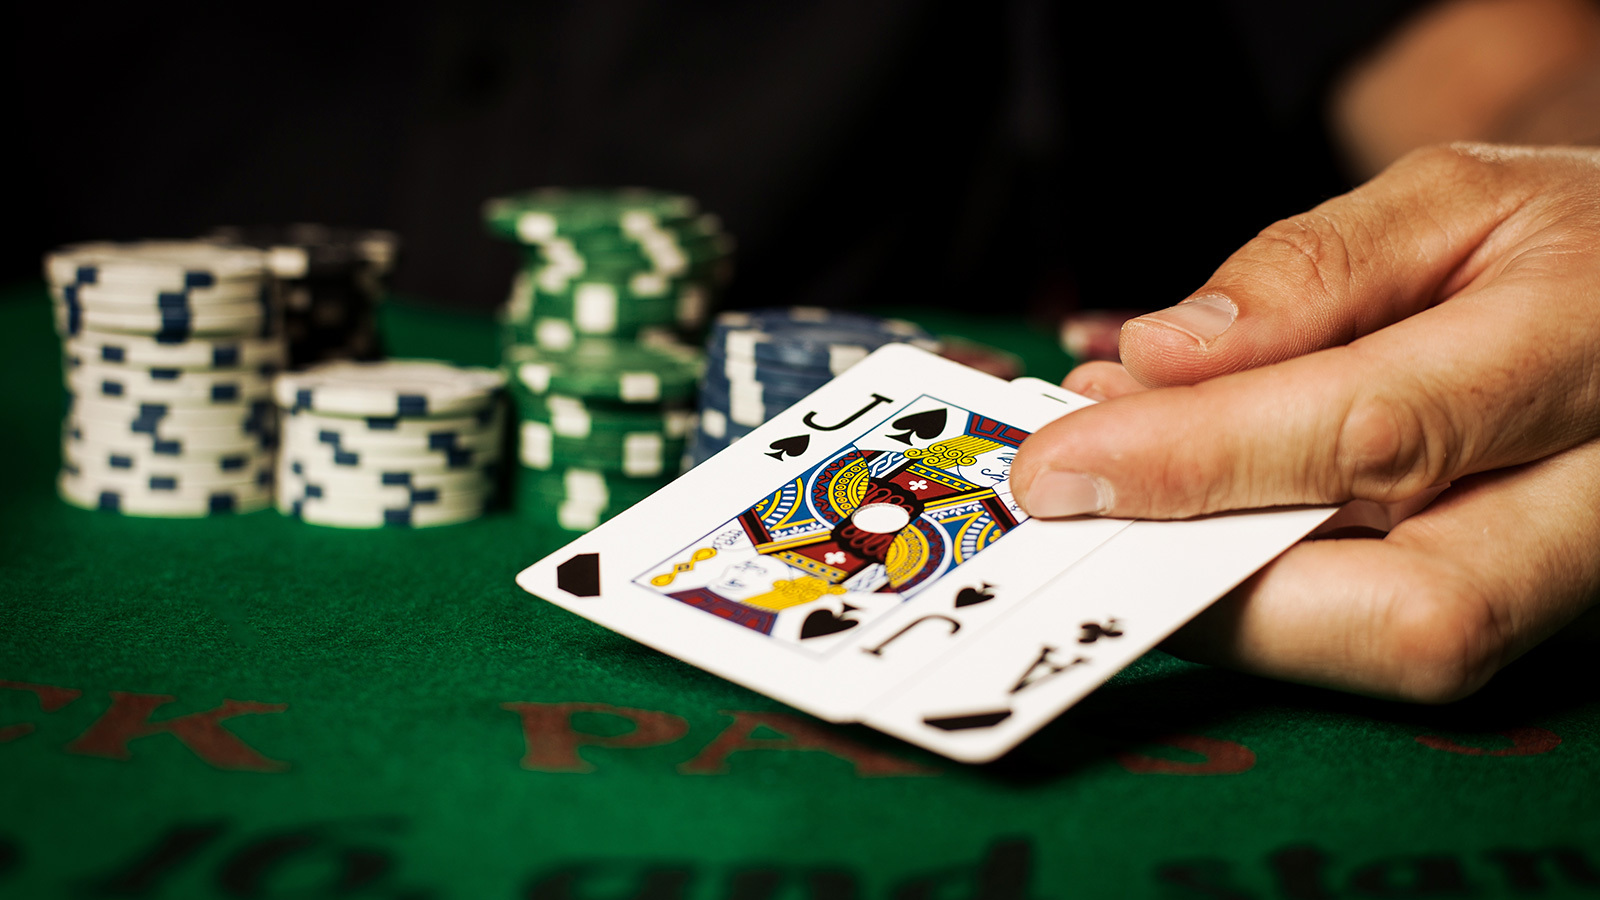 Take care while you deposit money in online casino